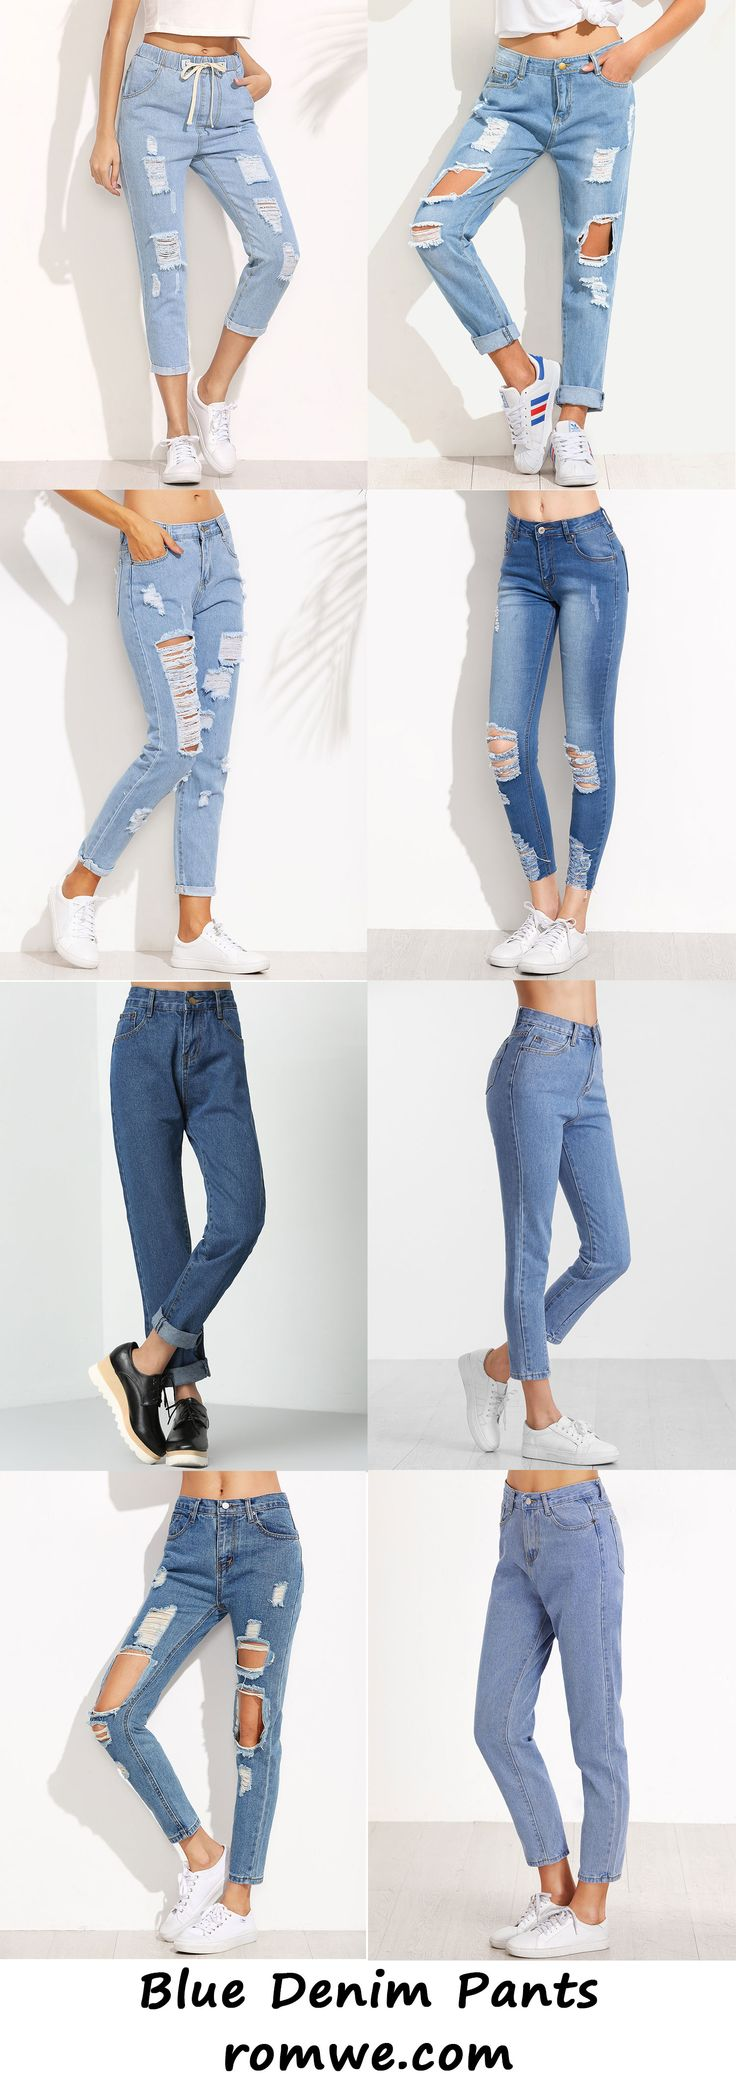 Fall Fashion - denim pants with crop tops from romwe. com